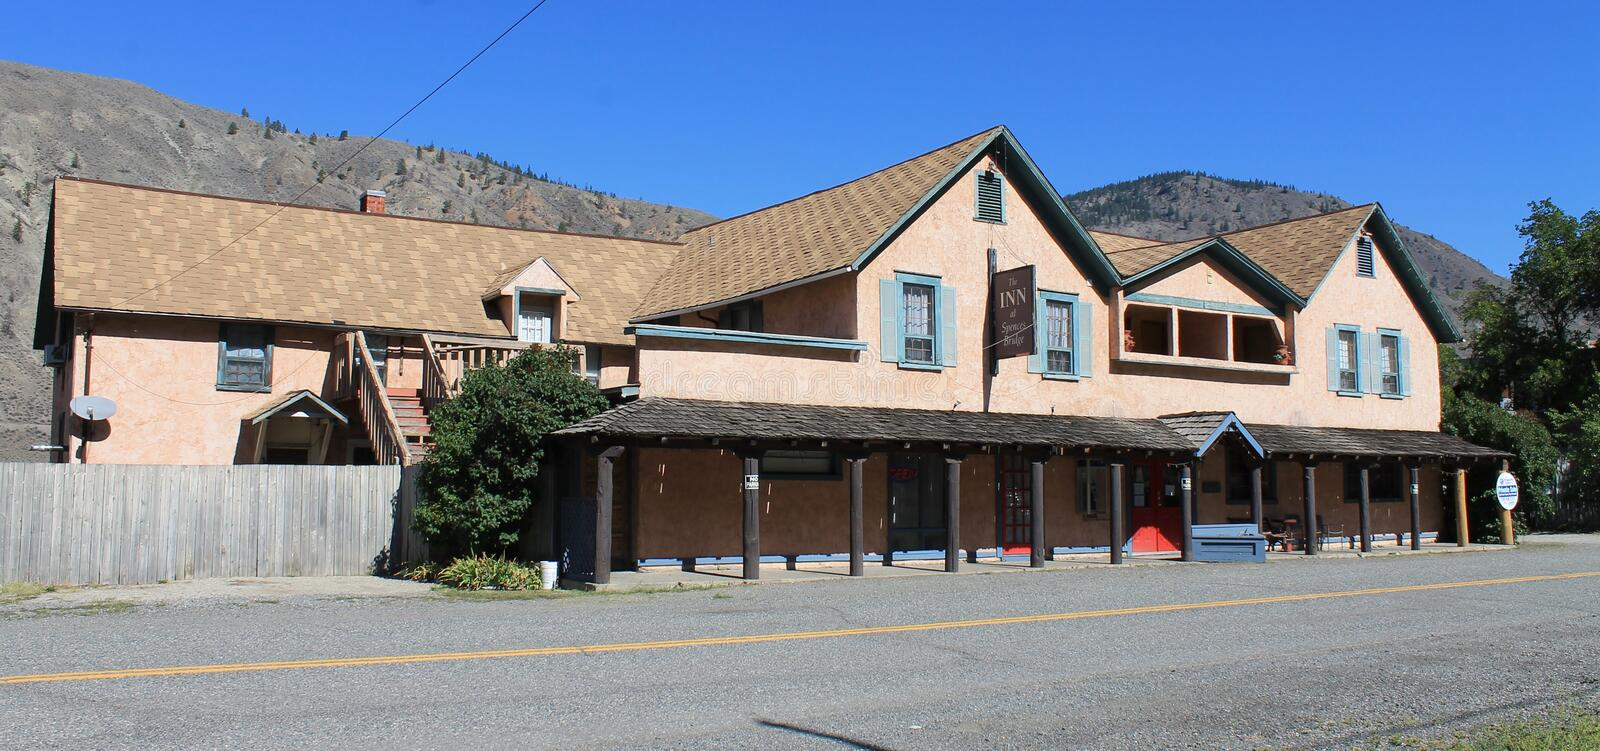 The Inn at Spences Bridge BC. The Inn at Spences Bridge is located on a quiet back country road that runs parallel to the Thompson River. Traditionally used by stock images